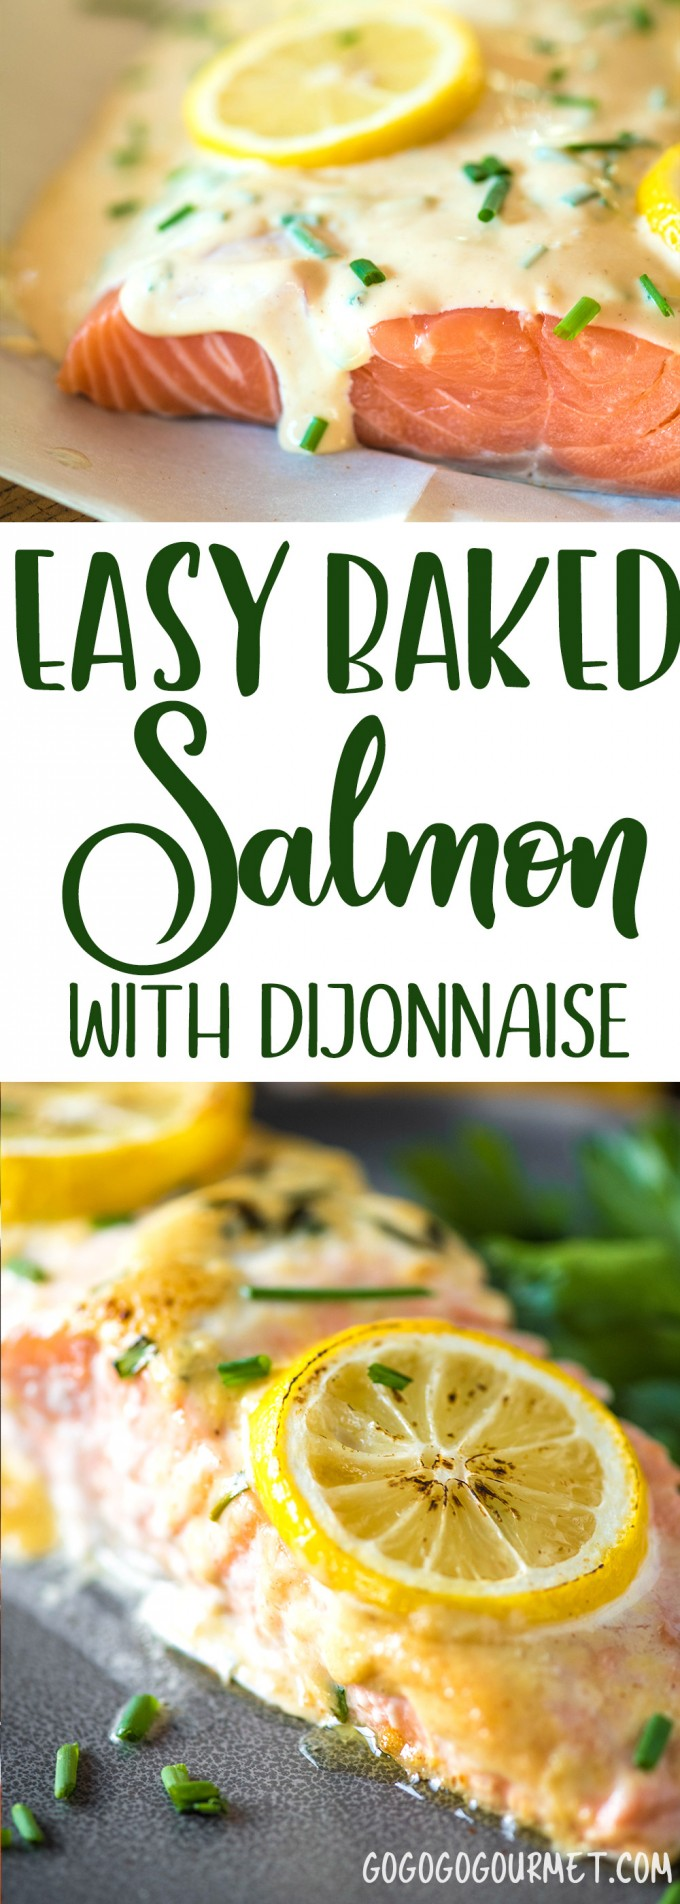 This Easy Oven Baked Lemon Salmon is topped off with an incredible dijonnaise sauce- so fast, its perfect for busy nights! #salmonrecipe #salmon #dinnerideas #dinnertime